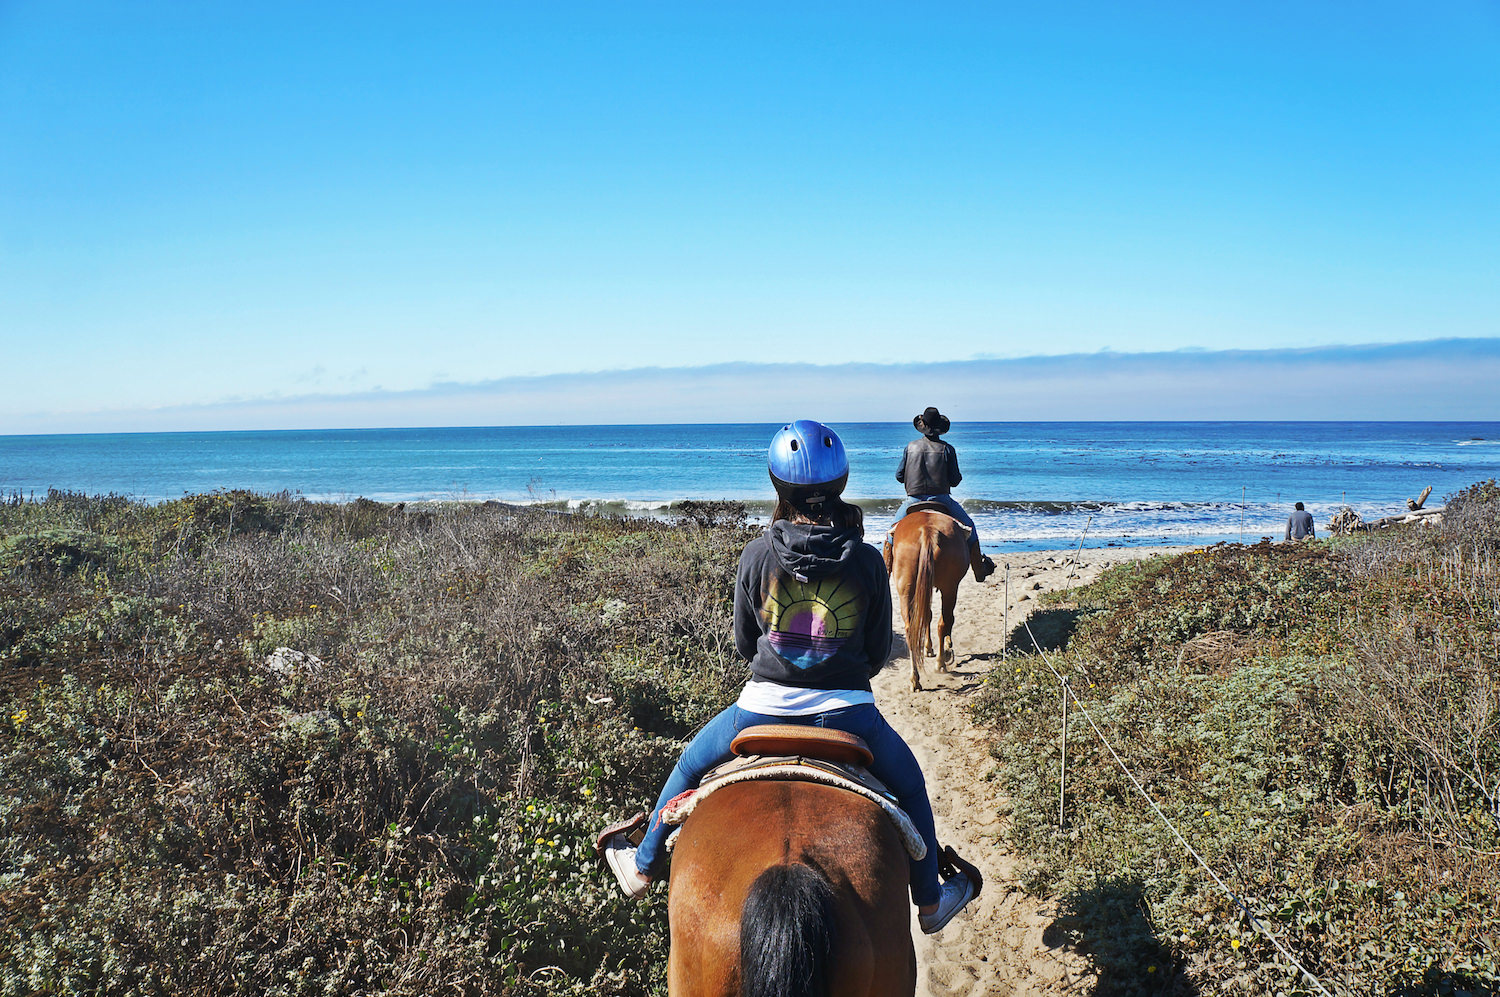 We went horseback riding early in the morning in Andrew Molera State Park where you can access the beach. It was so memorable.